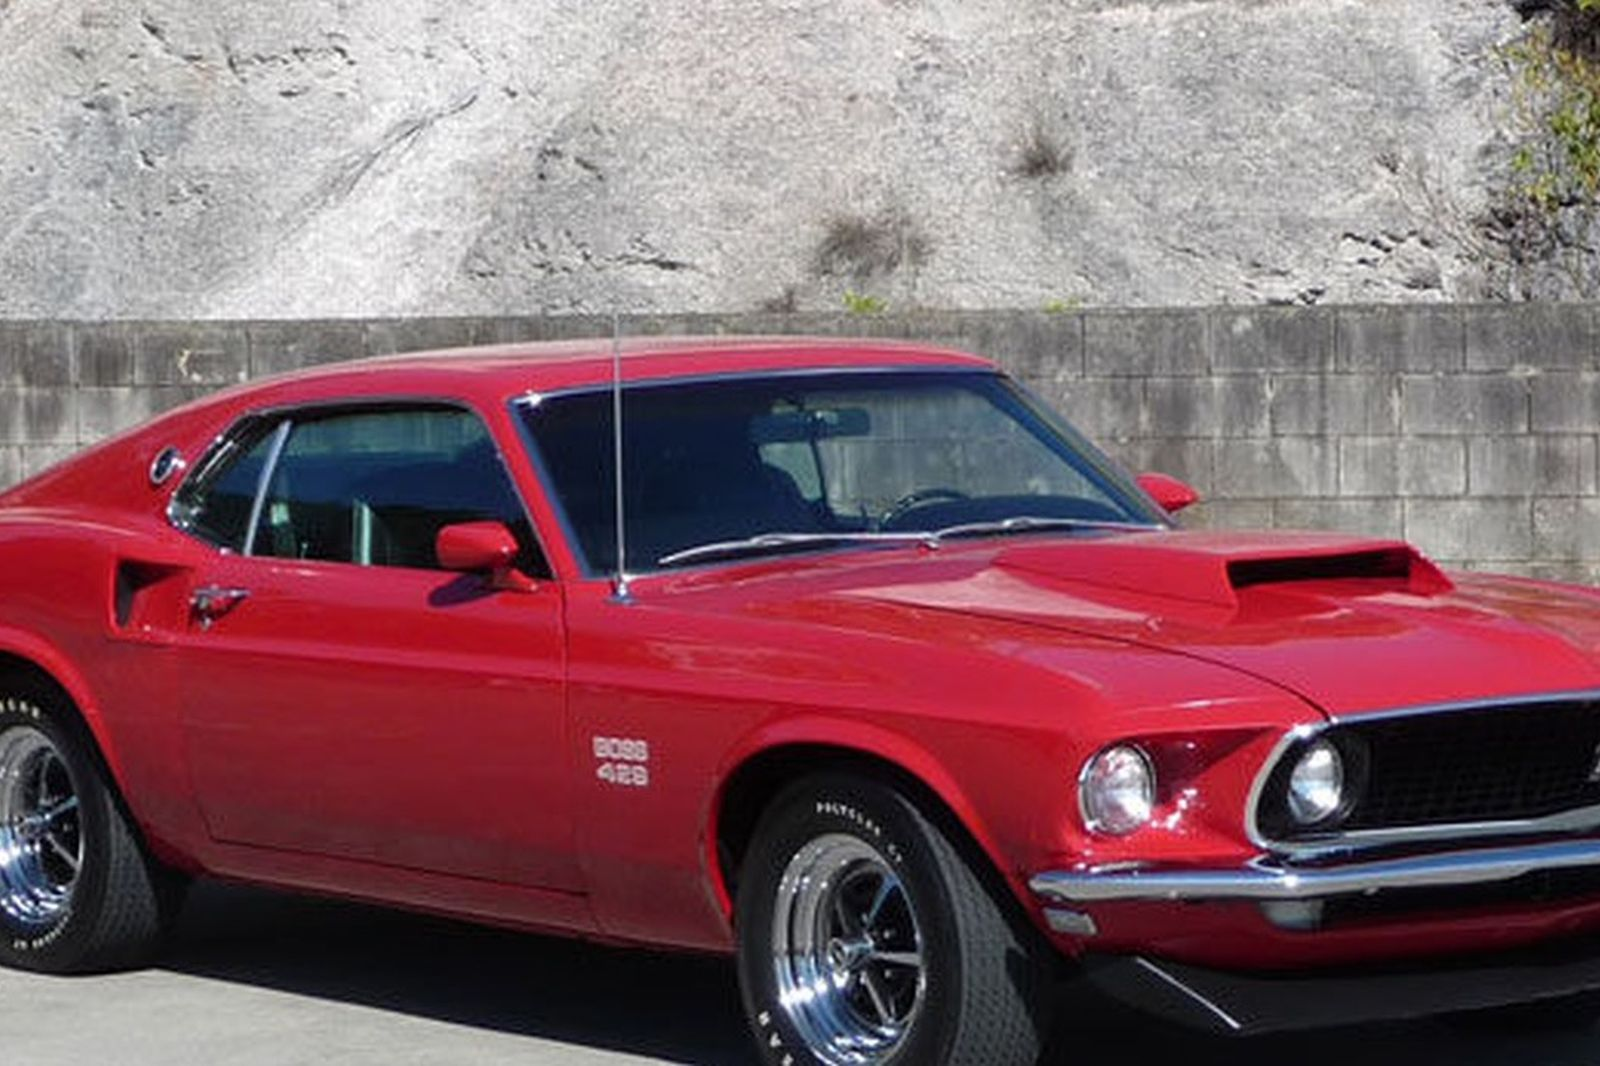 Ford mustang boss 429 fastback lhd auctions lot 23 shannons